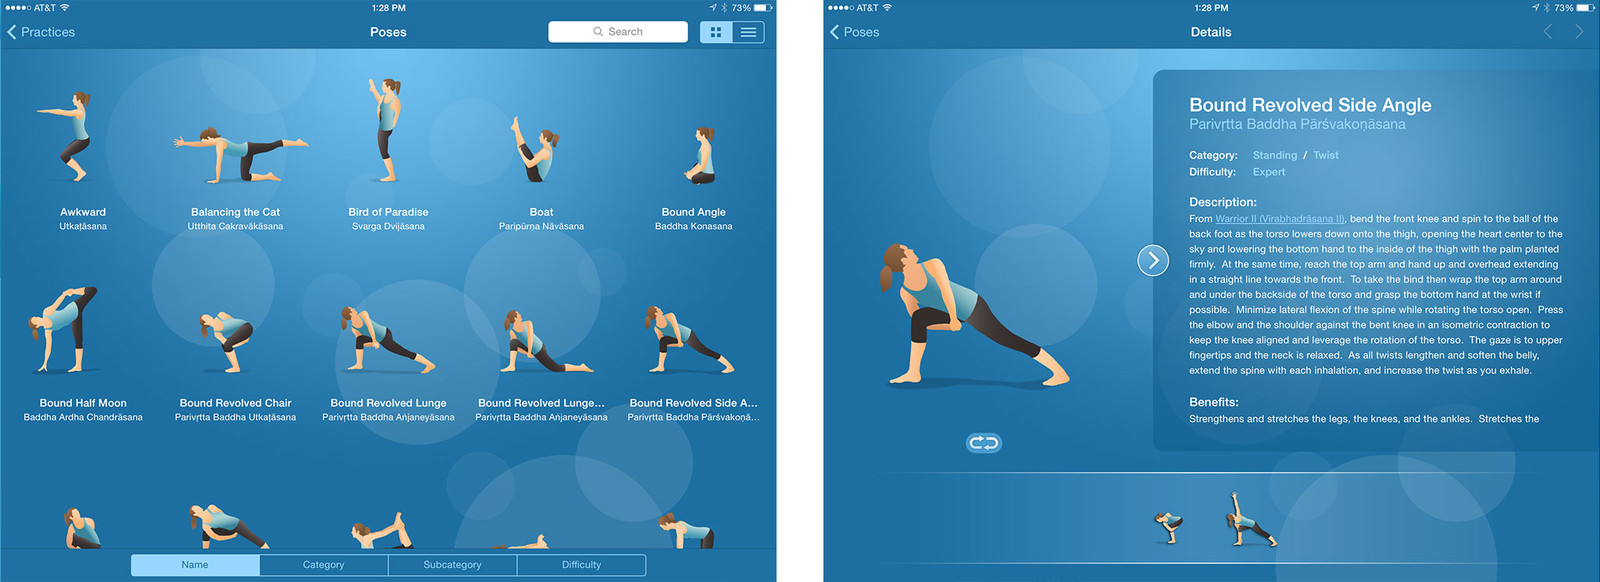 Best yoga apps for iPad: Pocket Yoga